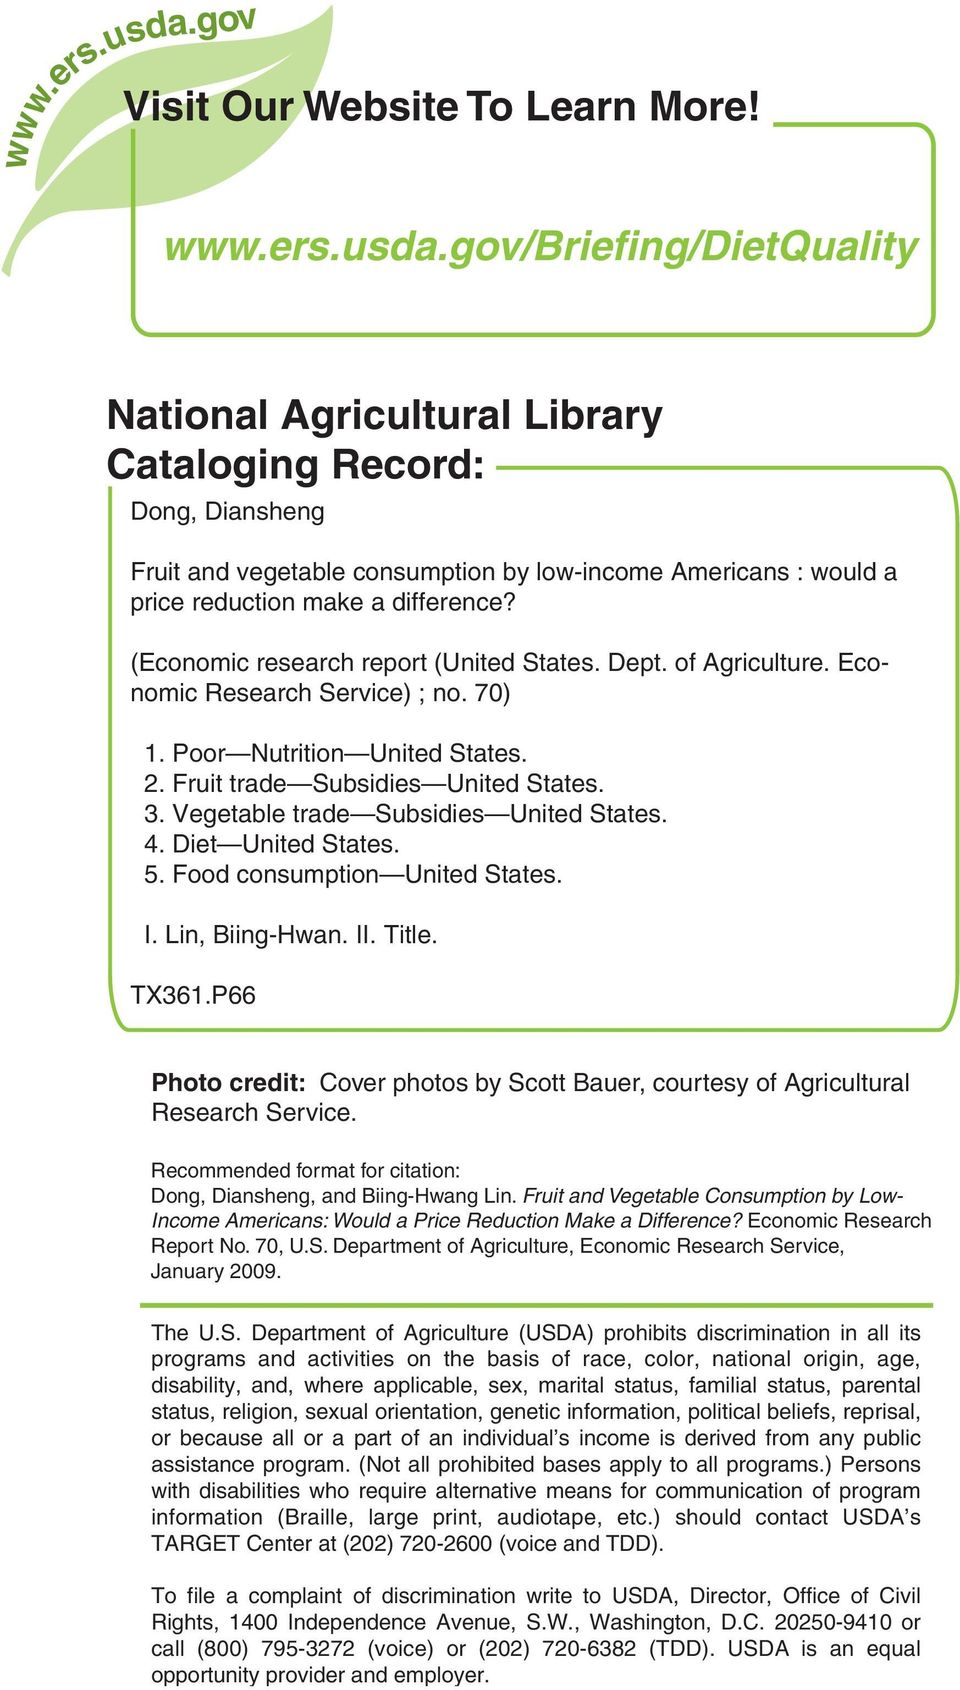 gov/briefing/dietquality National Agricultural Library Cataloging Record: Dong, Diansheng Fruit and vegetable consumption by low-income Americans : would a price reduction make a difference?